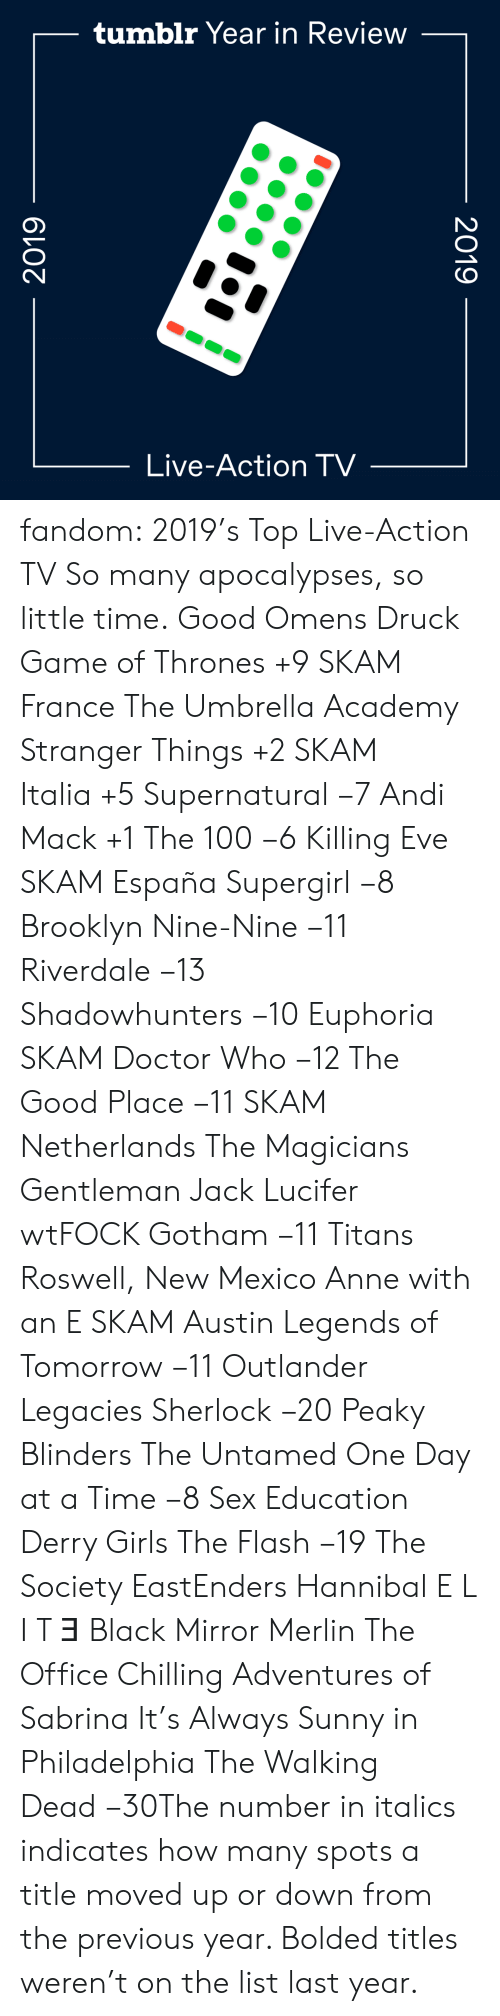 Search: tumblr Year in Review  Live-Action TV-  2019  2019 fandom:  2019's Top Live-Action TV  So many apocalypses, so little time.  Good Omens  Druck  Game of Thrones +9  SKAM France  The Umbrella Academy  Stranger Things +2  SKAM Italia +5  Supernatural −7  Andi Mack +1  The 100 −6  Killing Eve   SKAM España  Supergirl −8  Brooklyn Nine-Nine −11  Riverdale −13  Shadowhunters −10  Euphoria  SKAM  Doctor Who −12  The Good Place −11  SKAM Netherlands  The Magicians  Gentleman Jack  Lucifer  wtFOCK  Gotham −11  Titans  Roswell, New Mexico  Anne with an E  SKAM Austin  Legends of Tomorrow −11  Outlander  Legacies  Sherlock −20  Peaky Blinders  The Untamed  One Day at a Time −8  Sex Education  Derry Girls  The Flash −19  The Society  EastEnders  Hannibal  E L I T Ǝ  Black Mirror  Merlin  The Office  Chilling Adventures of Sabrina  It's Always Sunny in Philadelphia The Walking Dead −30The number in italics indicates how many spots a title moved up or down from the previous year. Bolded titles weren't on the list last year.